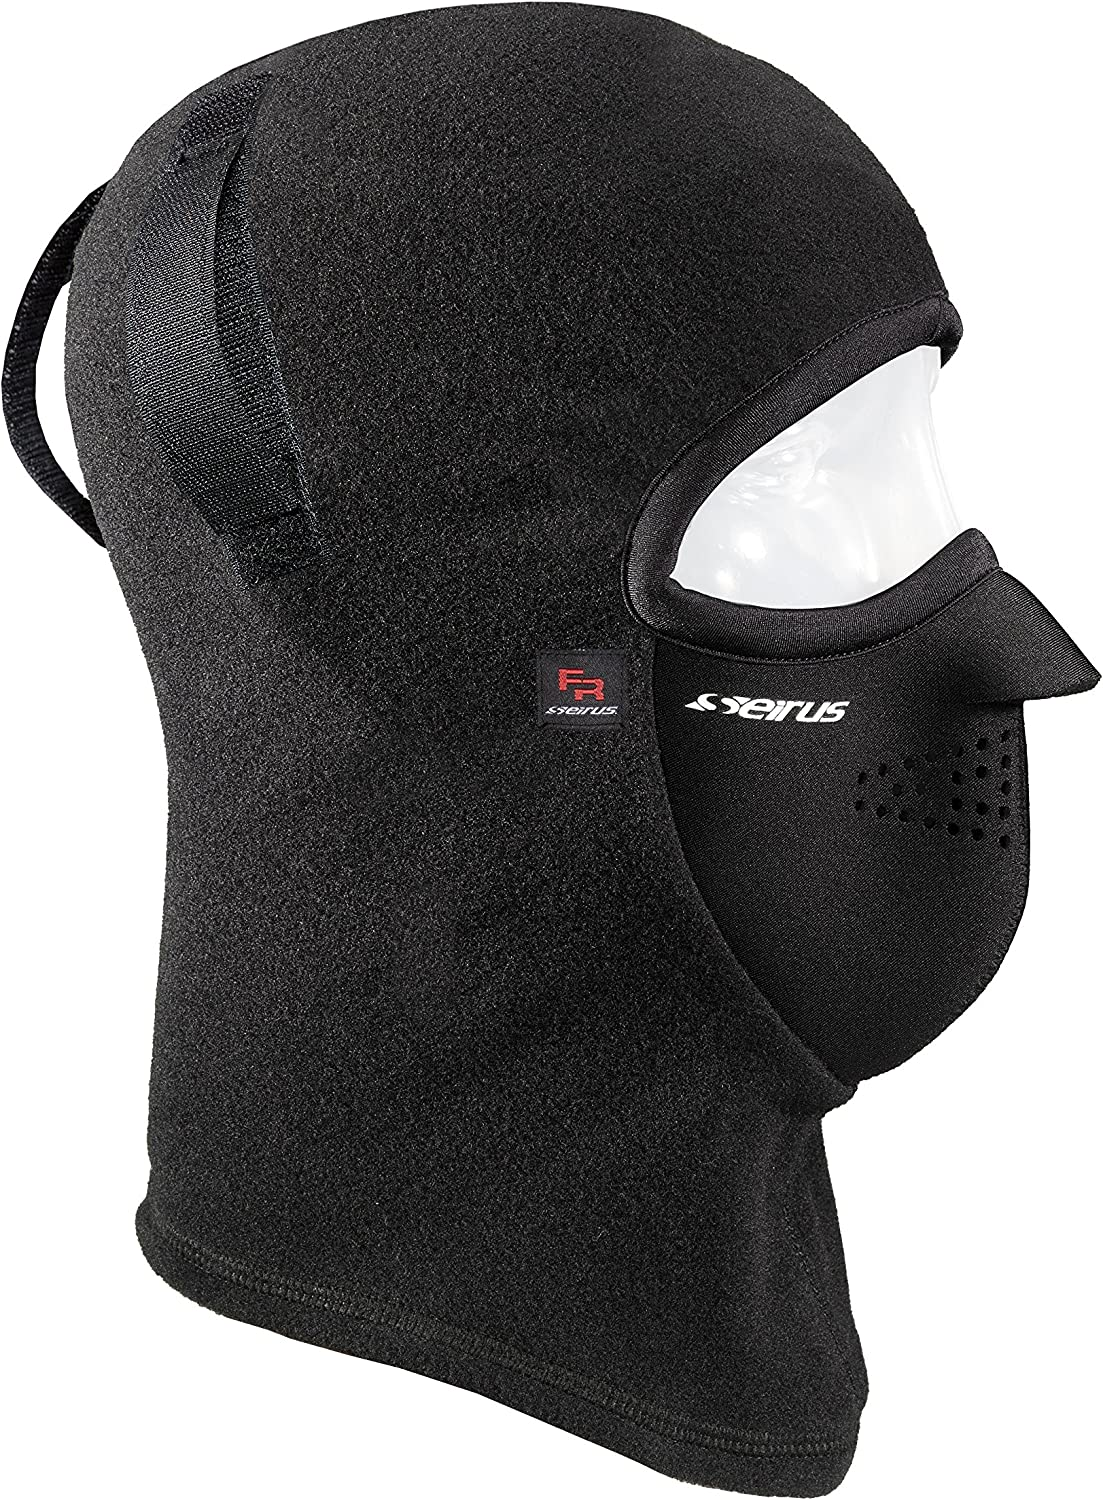 Seirus Innovation 8207 Fireshield Hard Hat Combo Clava with Velcro Attachment - Head Face Mask and Neck Warmer FIRE RESISTANT